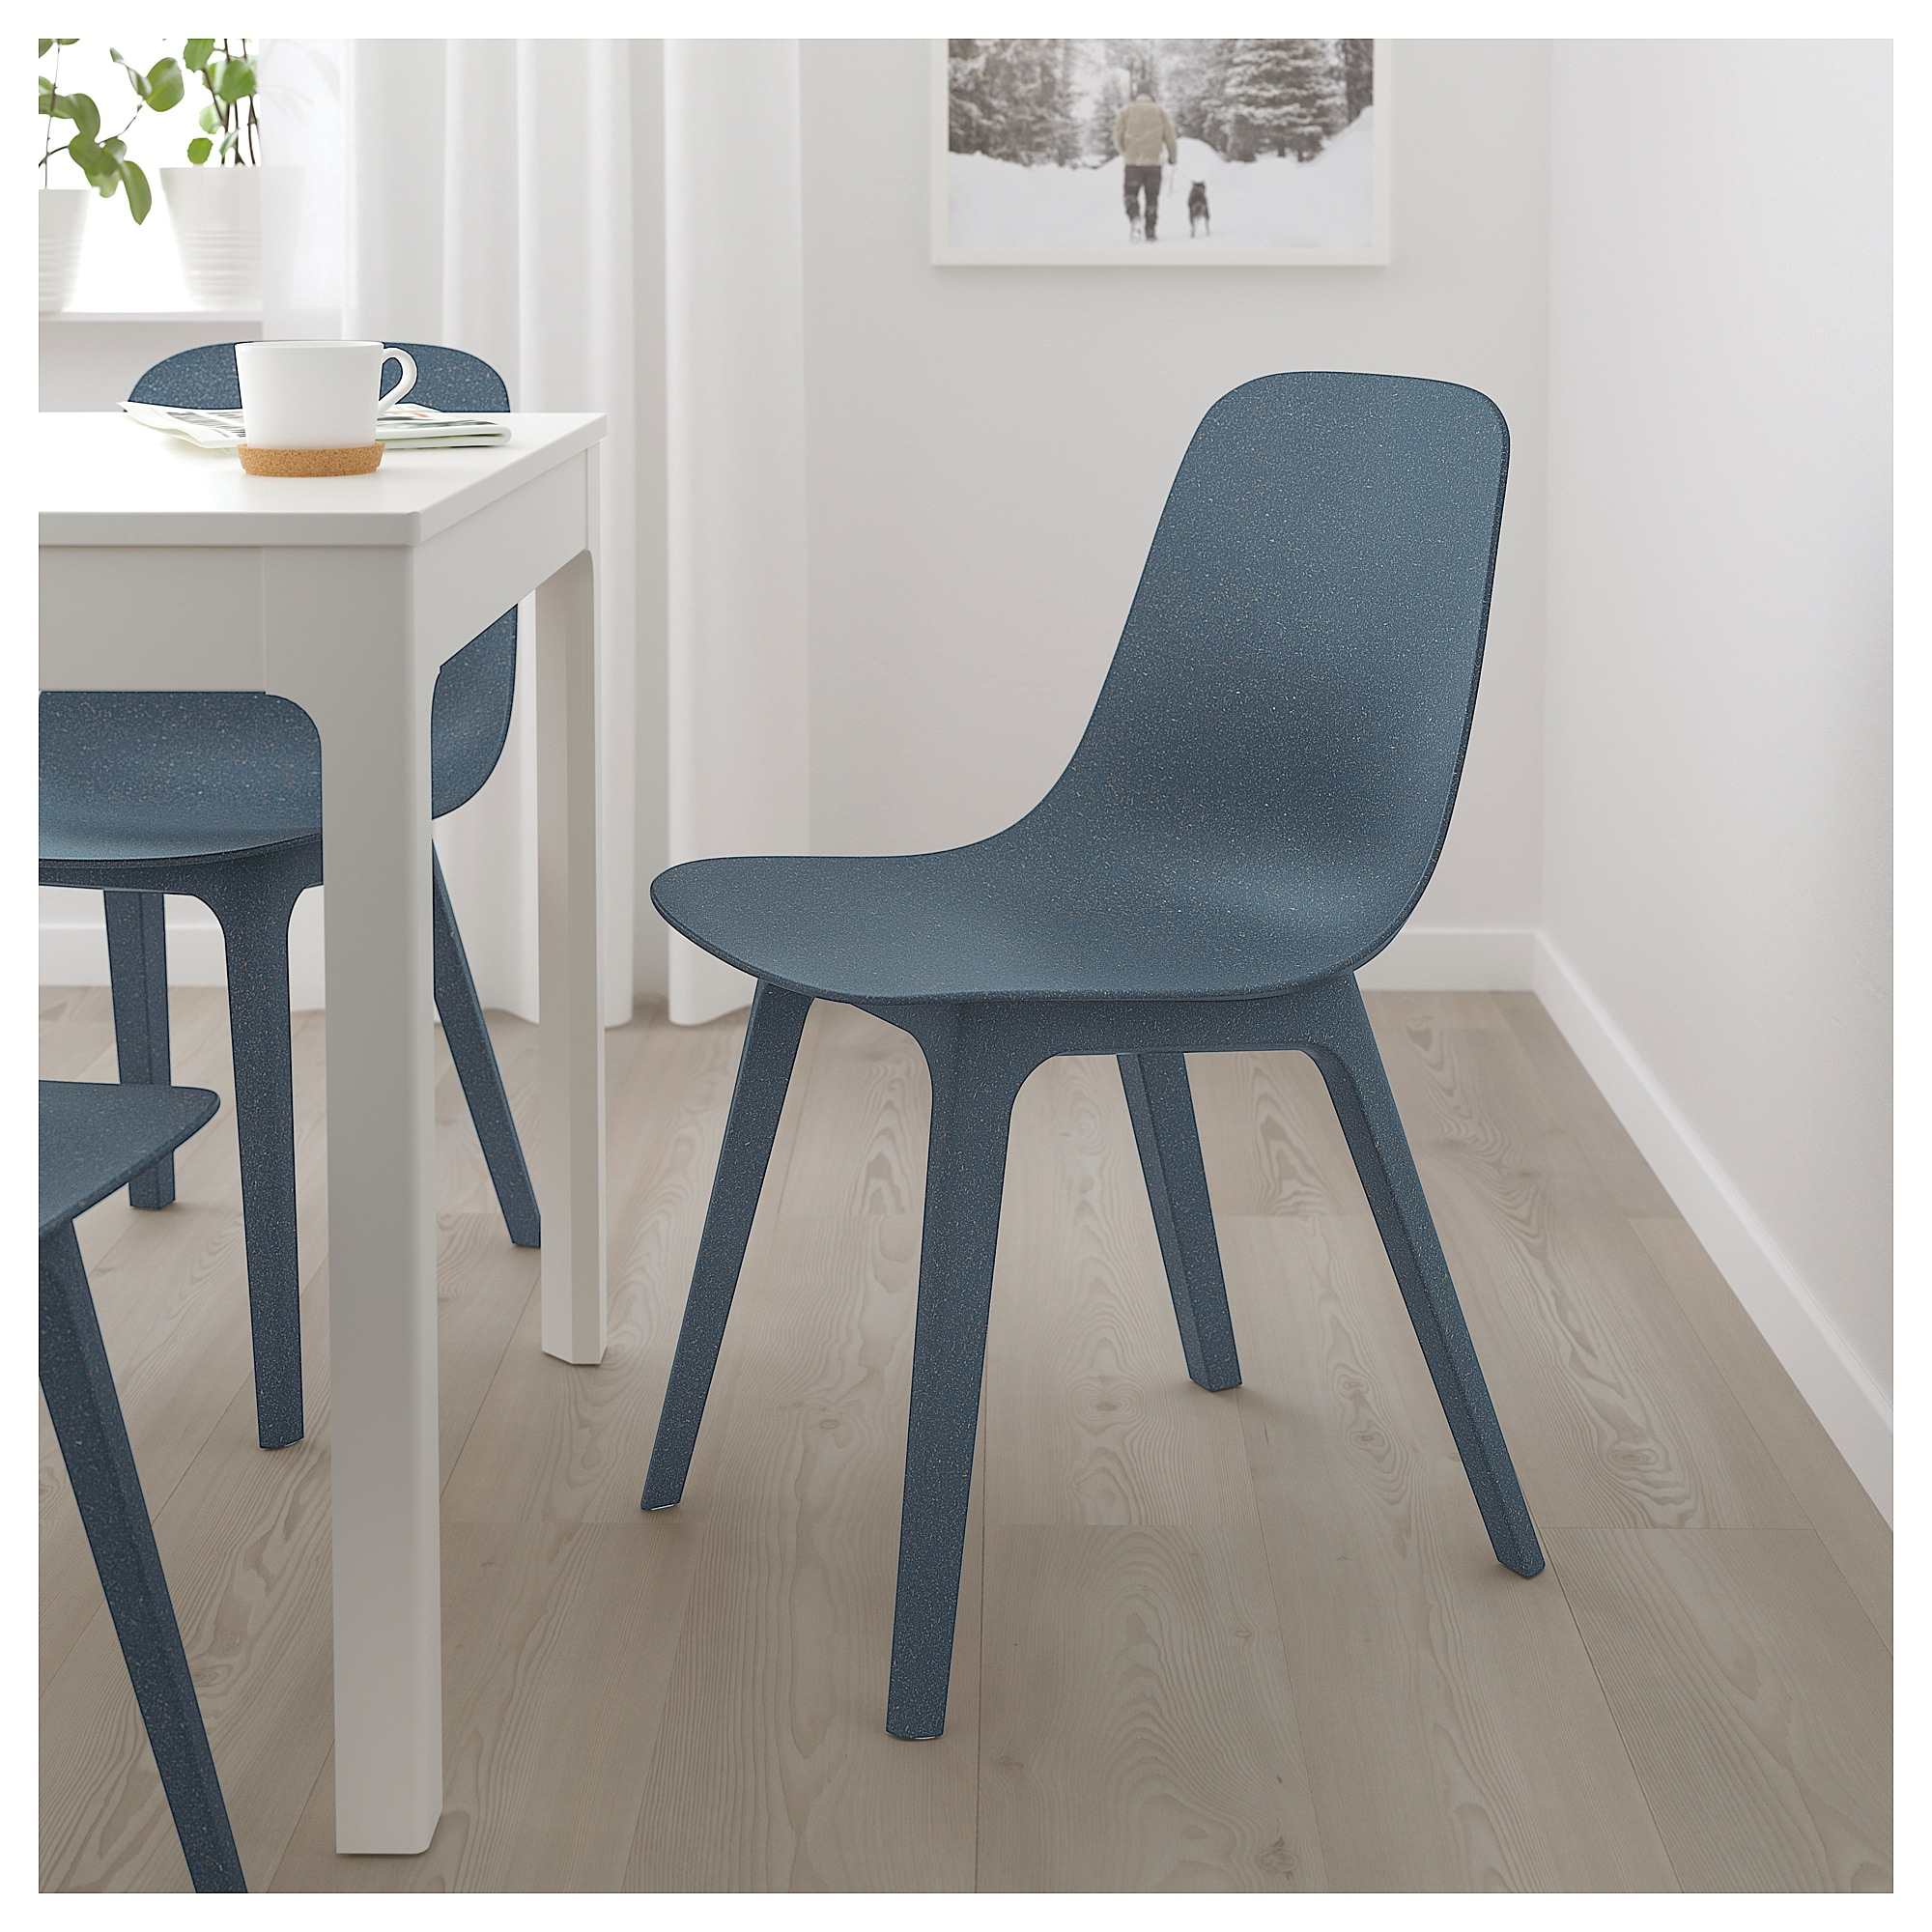 ODGER Chair blue Ikea dining chair, Upholstered desk